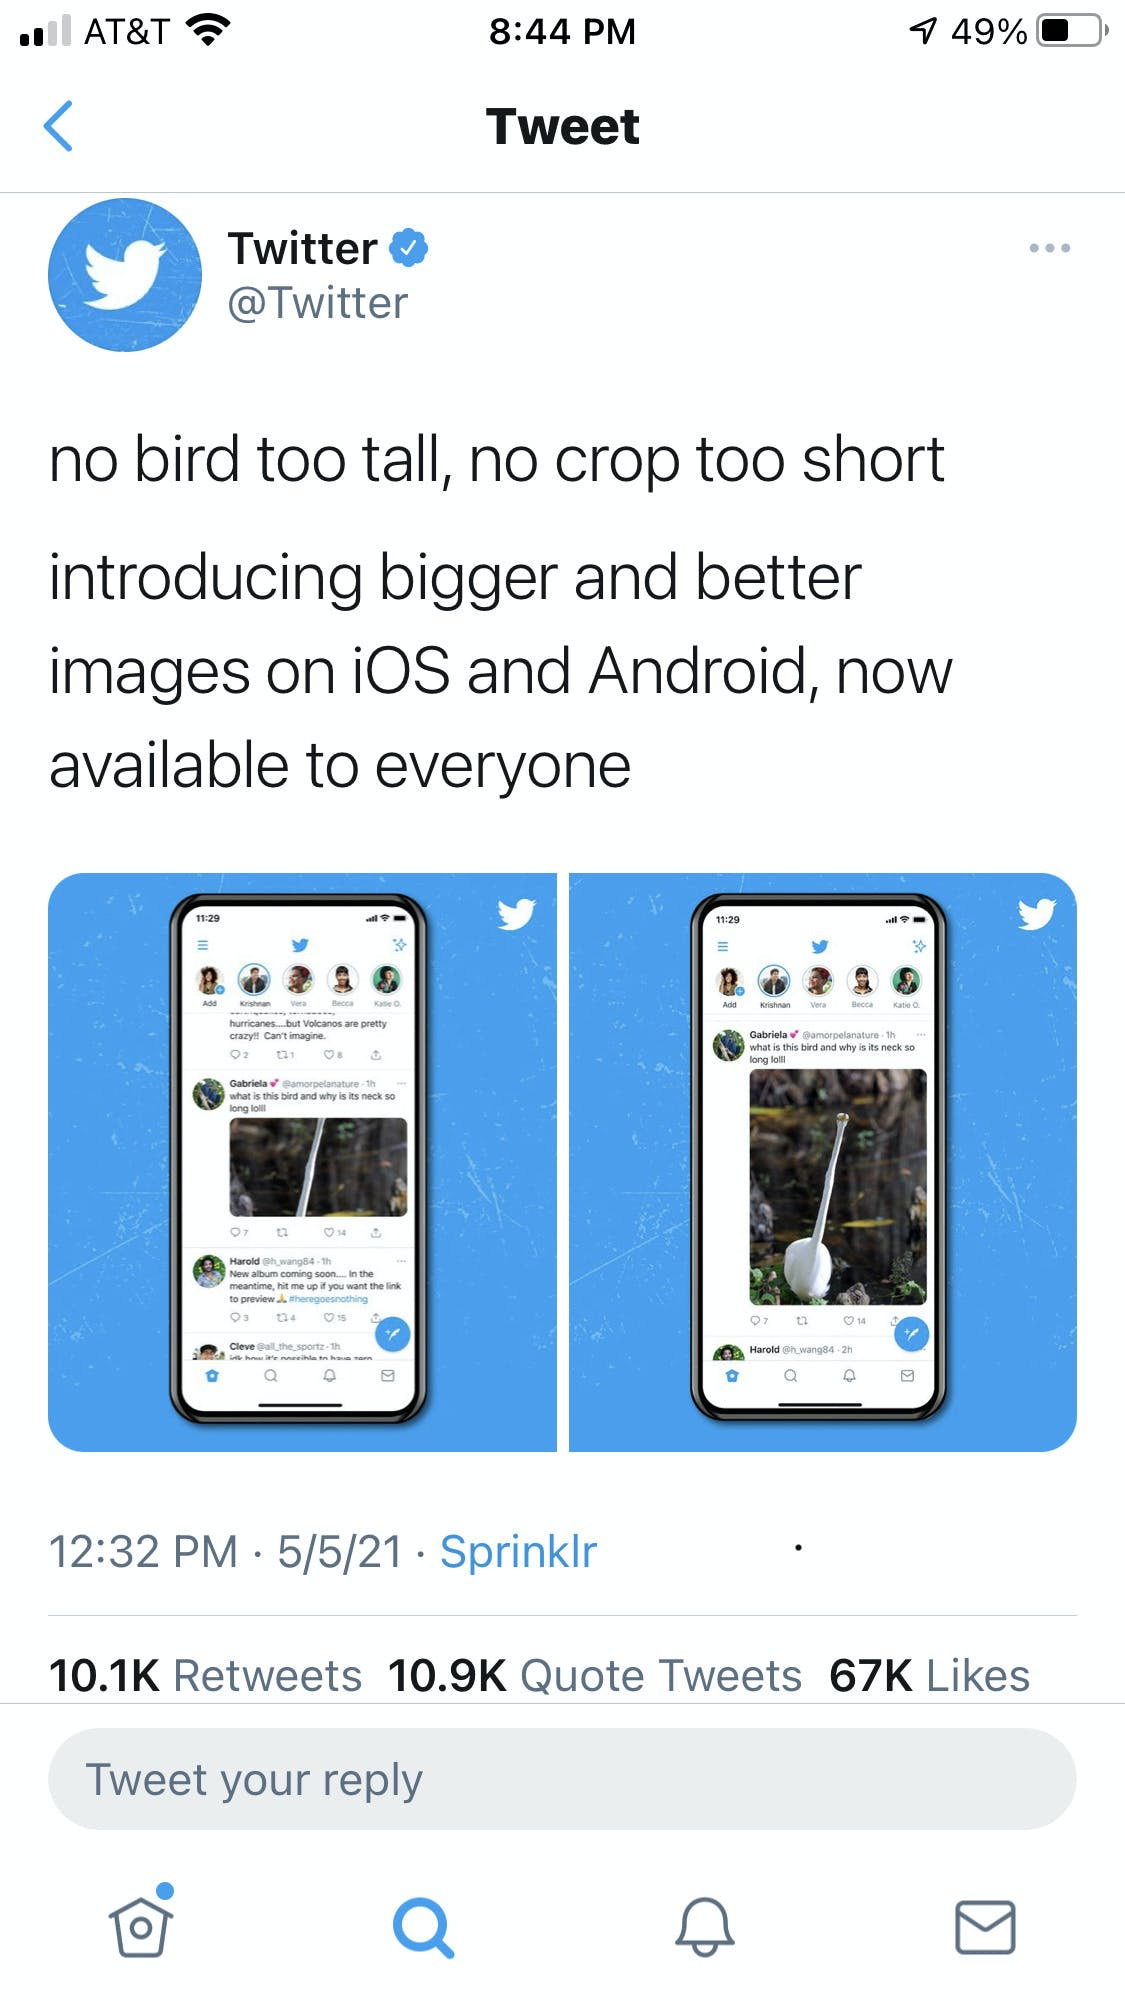 Tweet made from official Twitter account demonstrating a fully expanded vertical photo, which is how photos will now look on mobile, without the automatic Twitter crop.